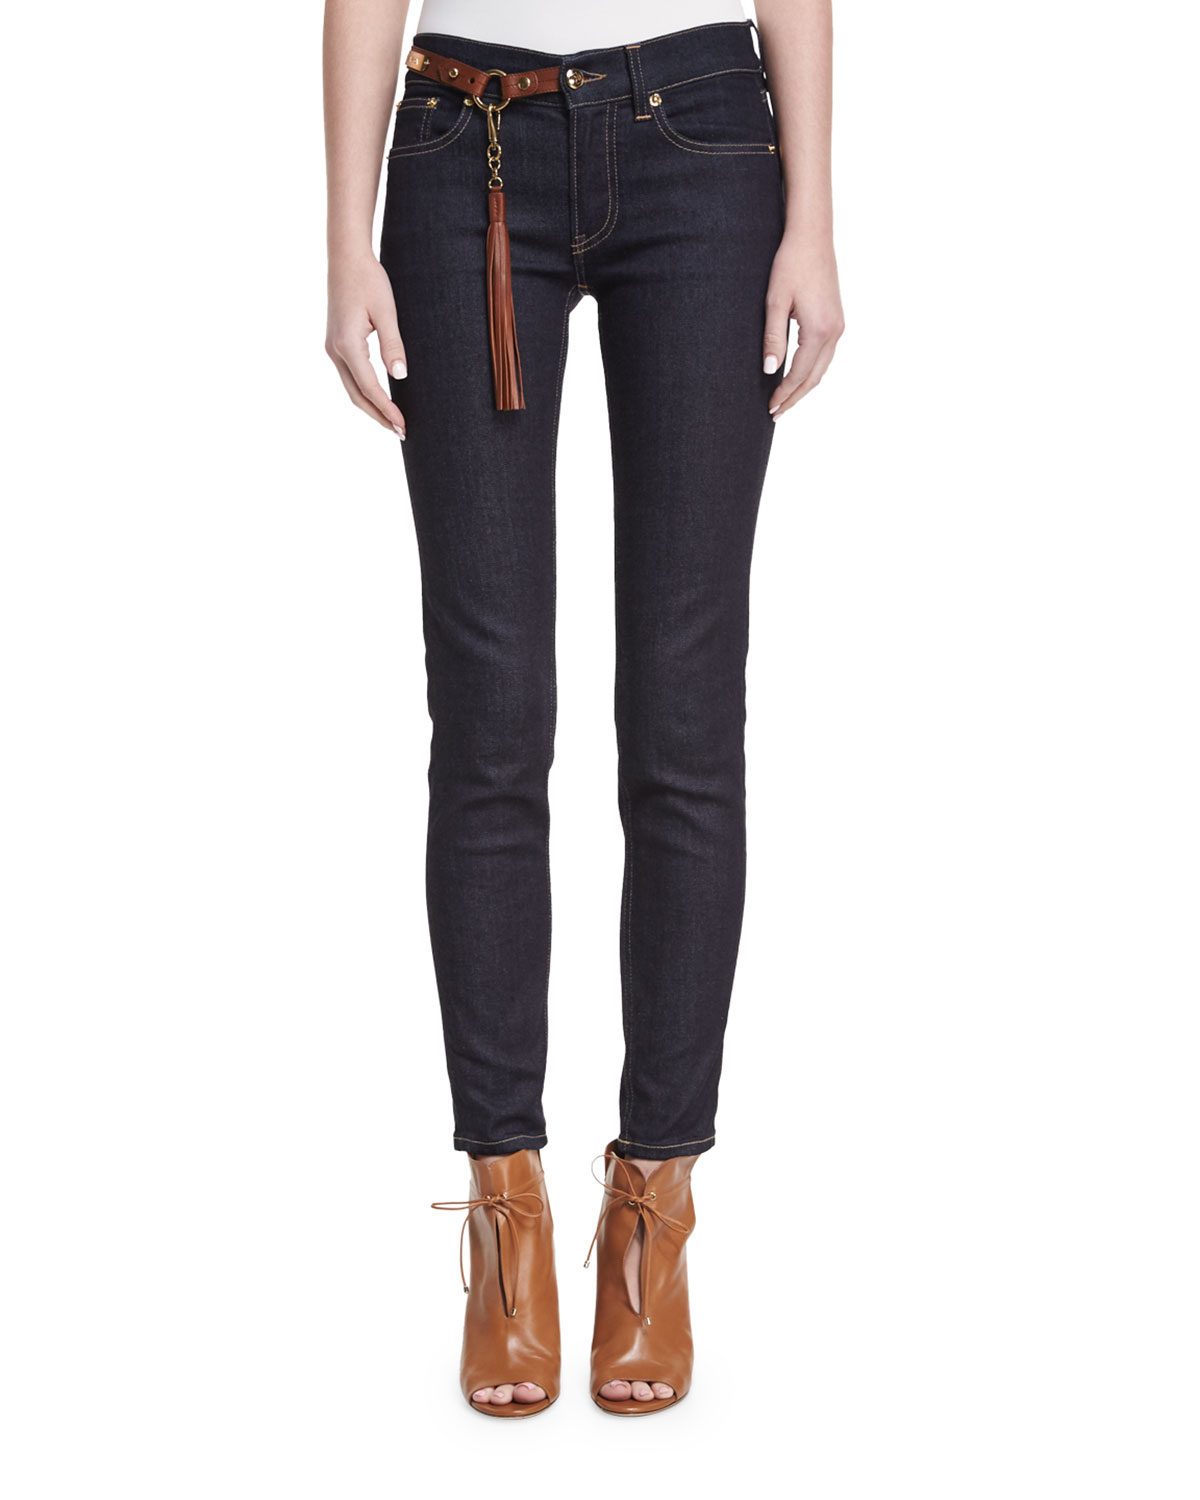 400 Matchstick Jeans with Harness